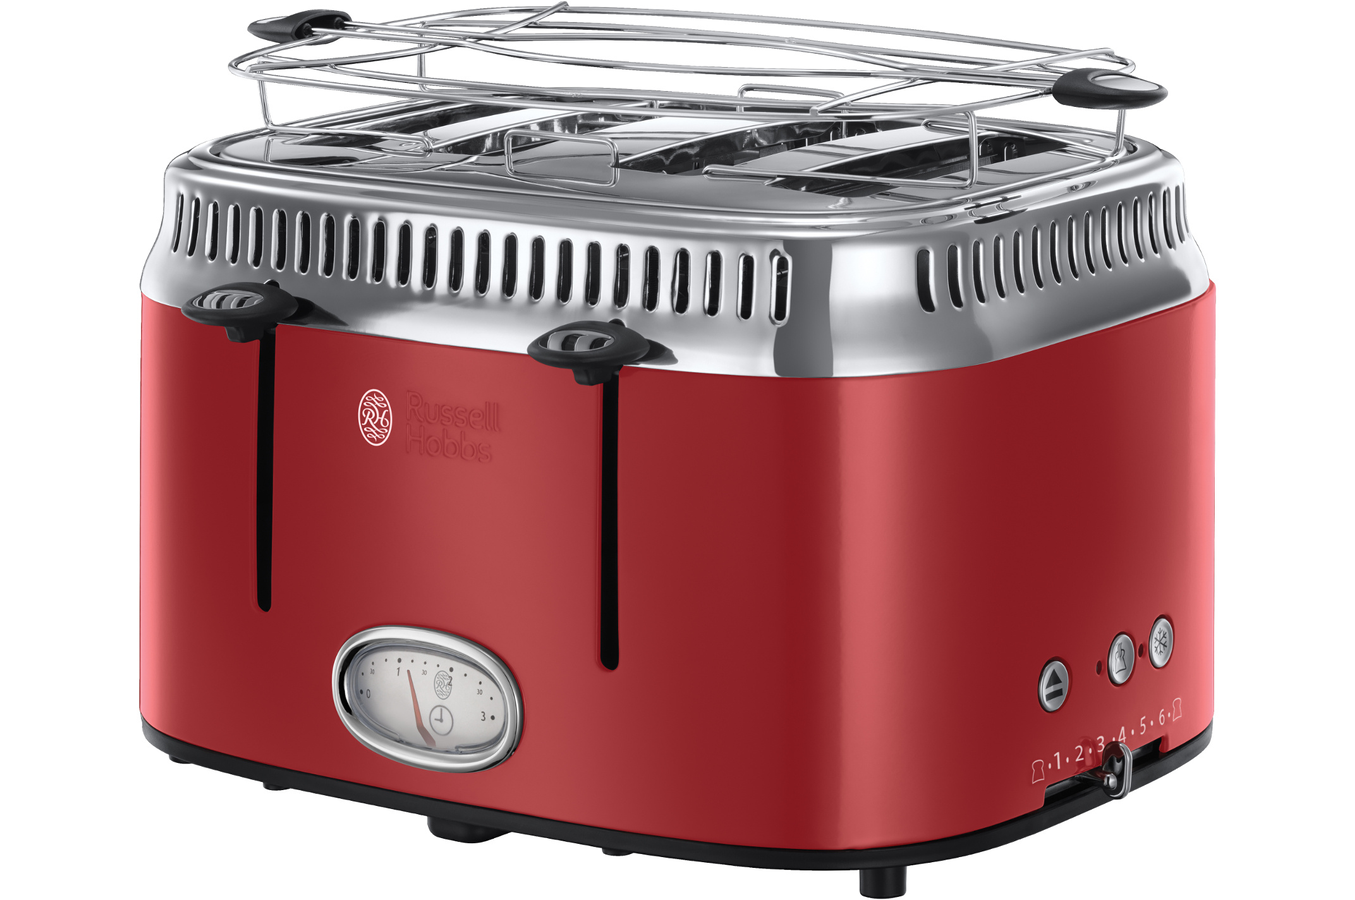 grille pain russell hobbs retro 21690 56 4 fentes rouge ruban intense grille pain toaster. Black Bedroom Furniture Sets. Home Design Ideas